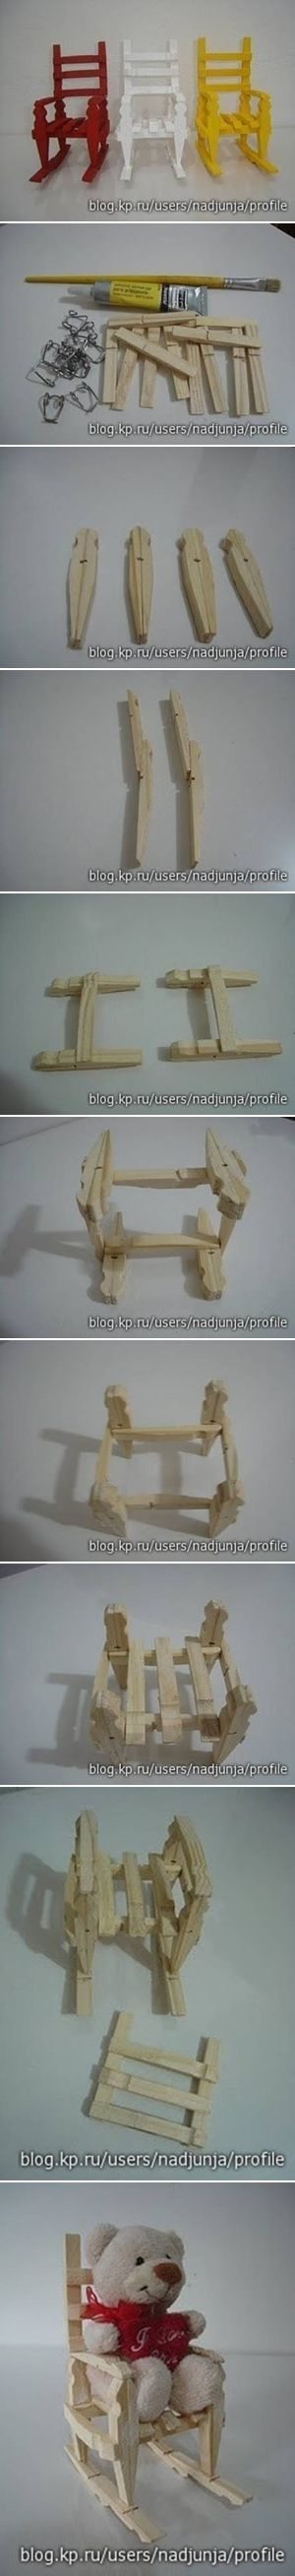 DIY Clothespin Rocking Chair DIY Clothespin Rocking Chair by diyforever